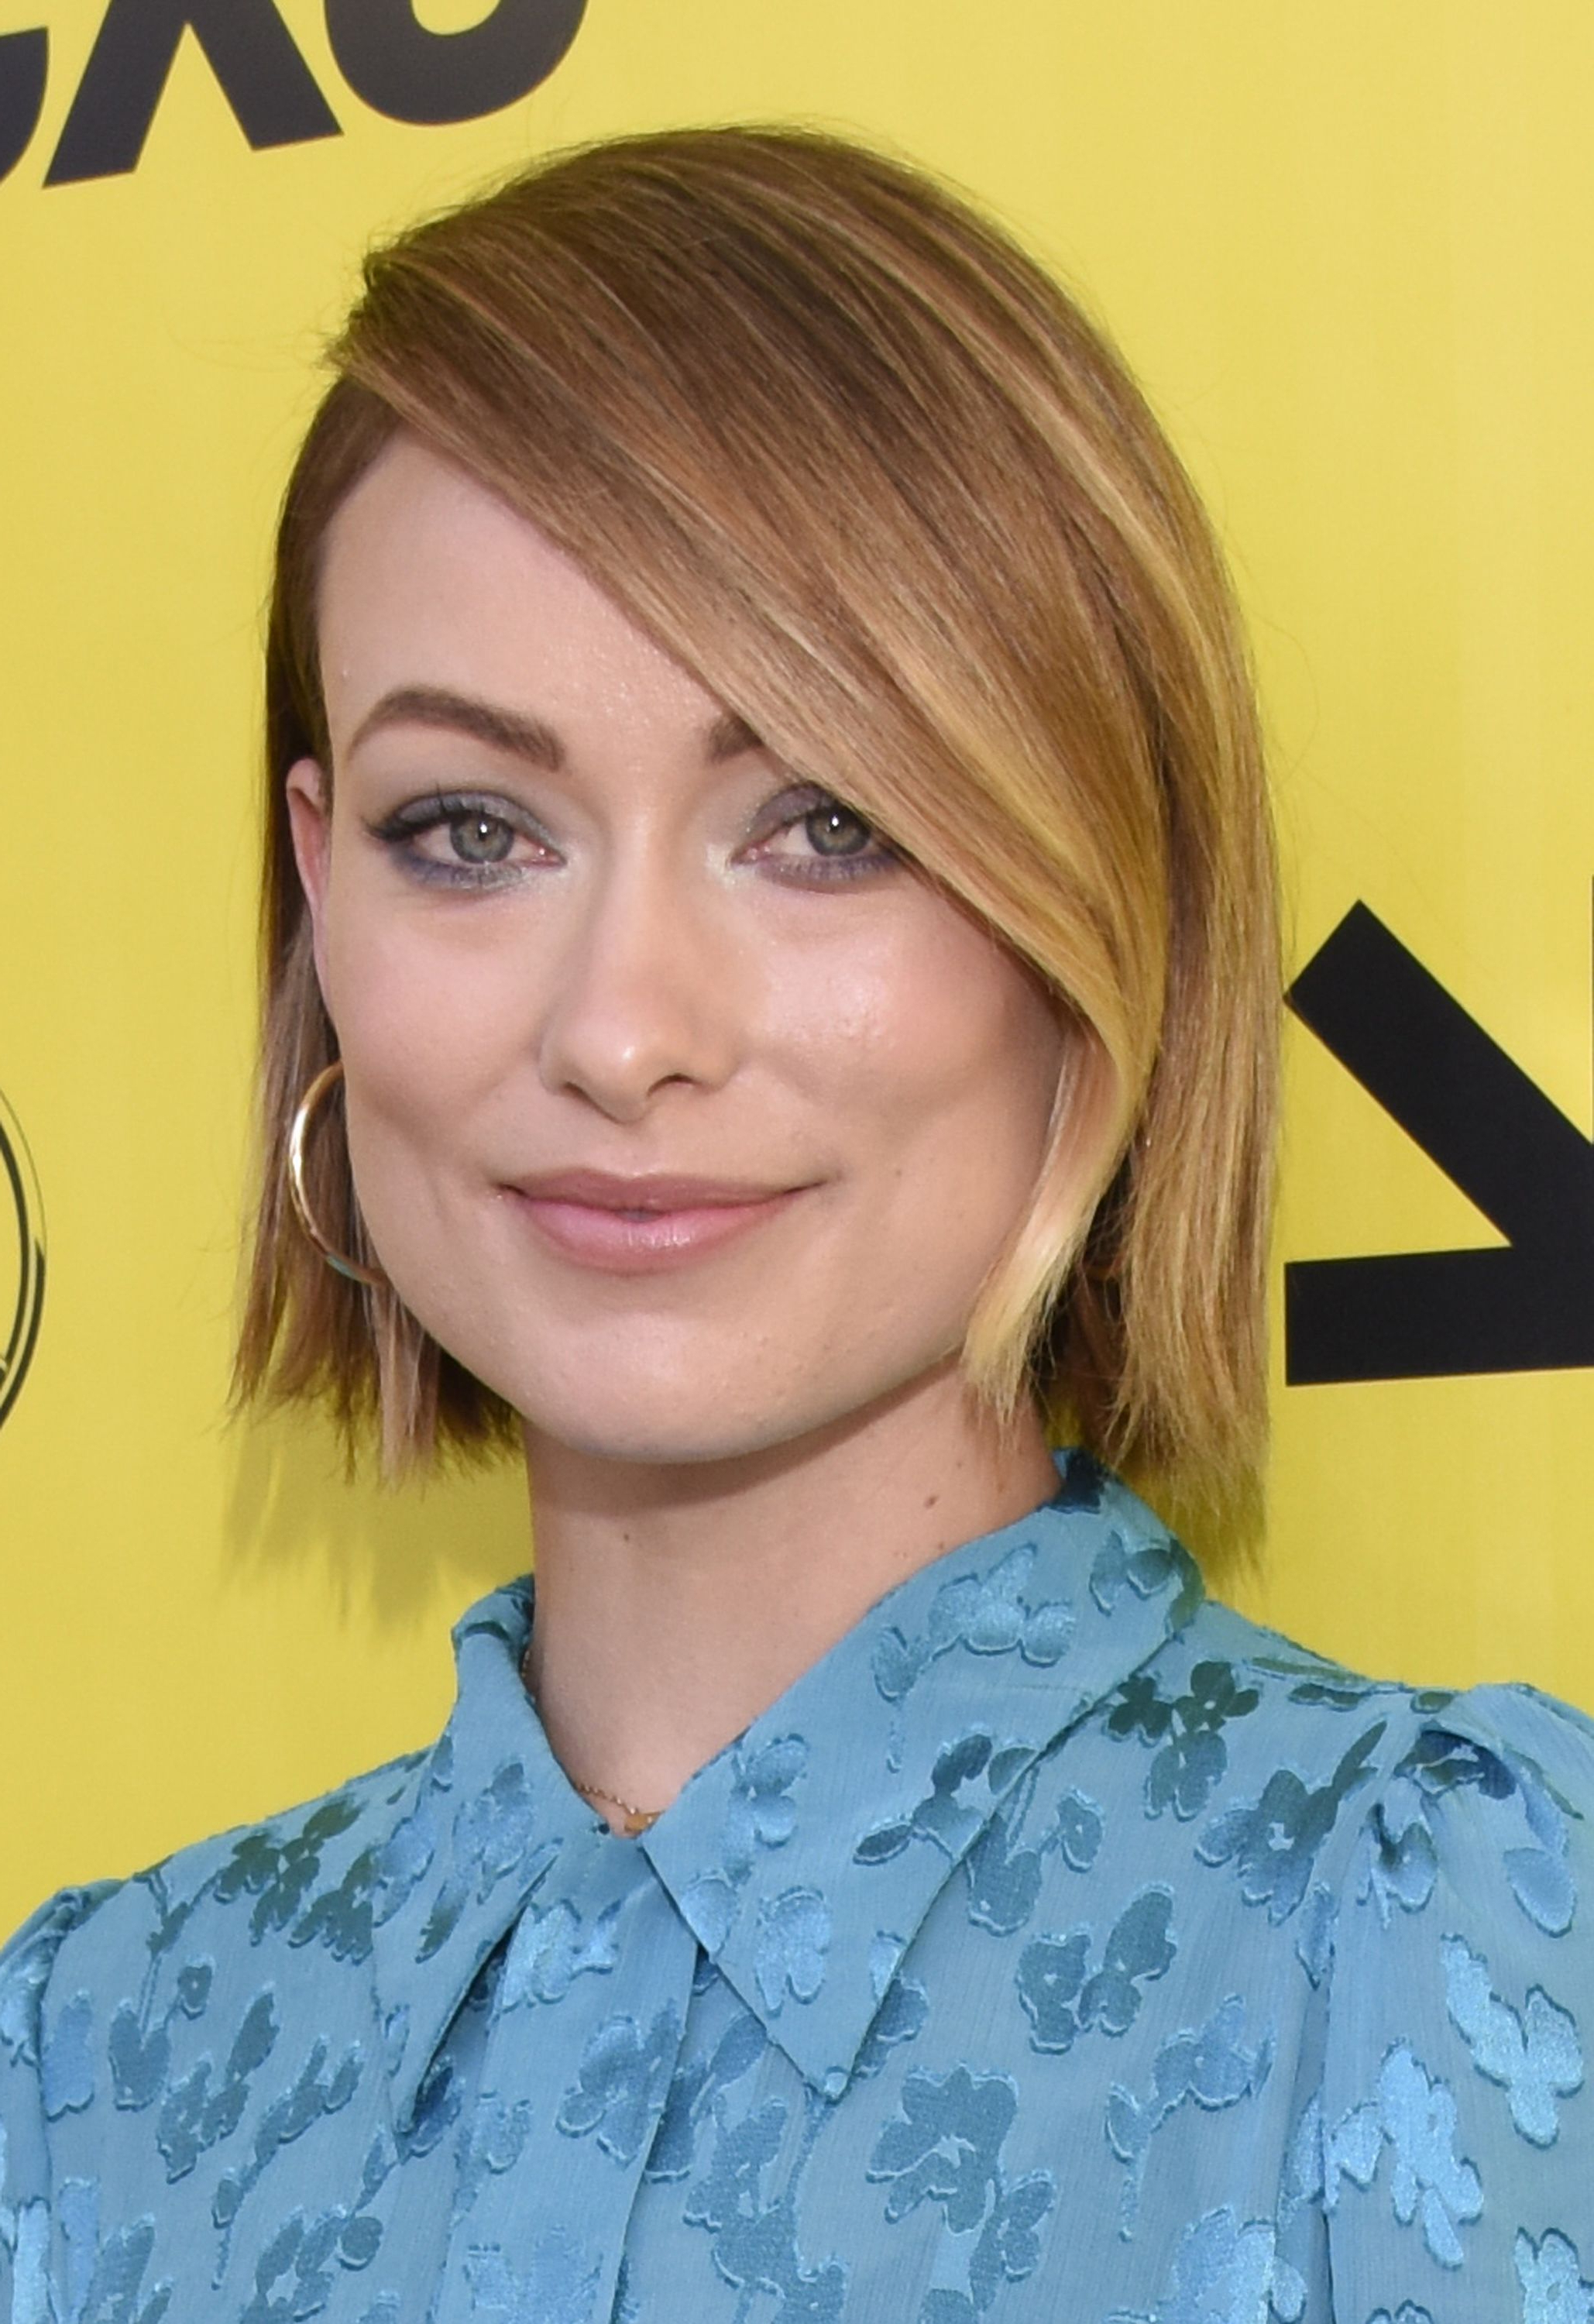 17 Celebrity Inspired Short Hairstyles For Fine Hair – 2018 Hair Ideas In Face Framing Short Hairstyles (View 21 of 25)